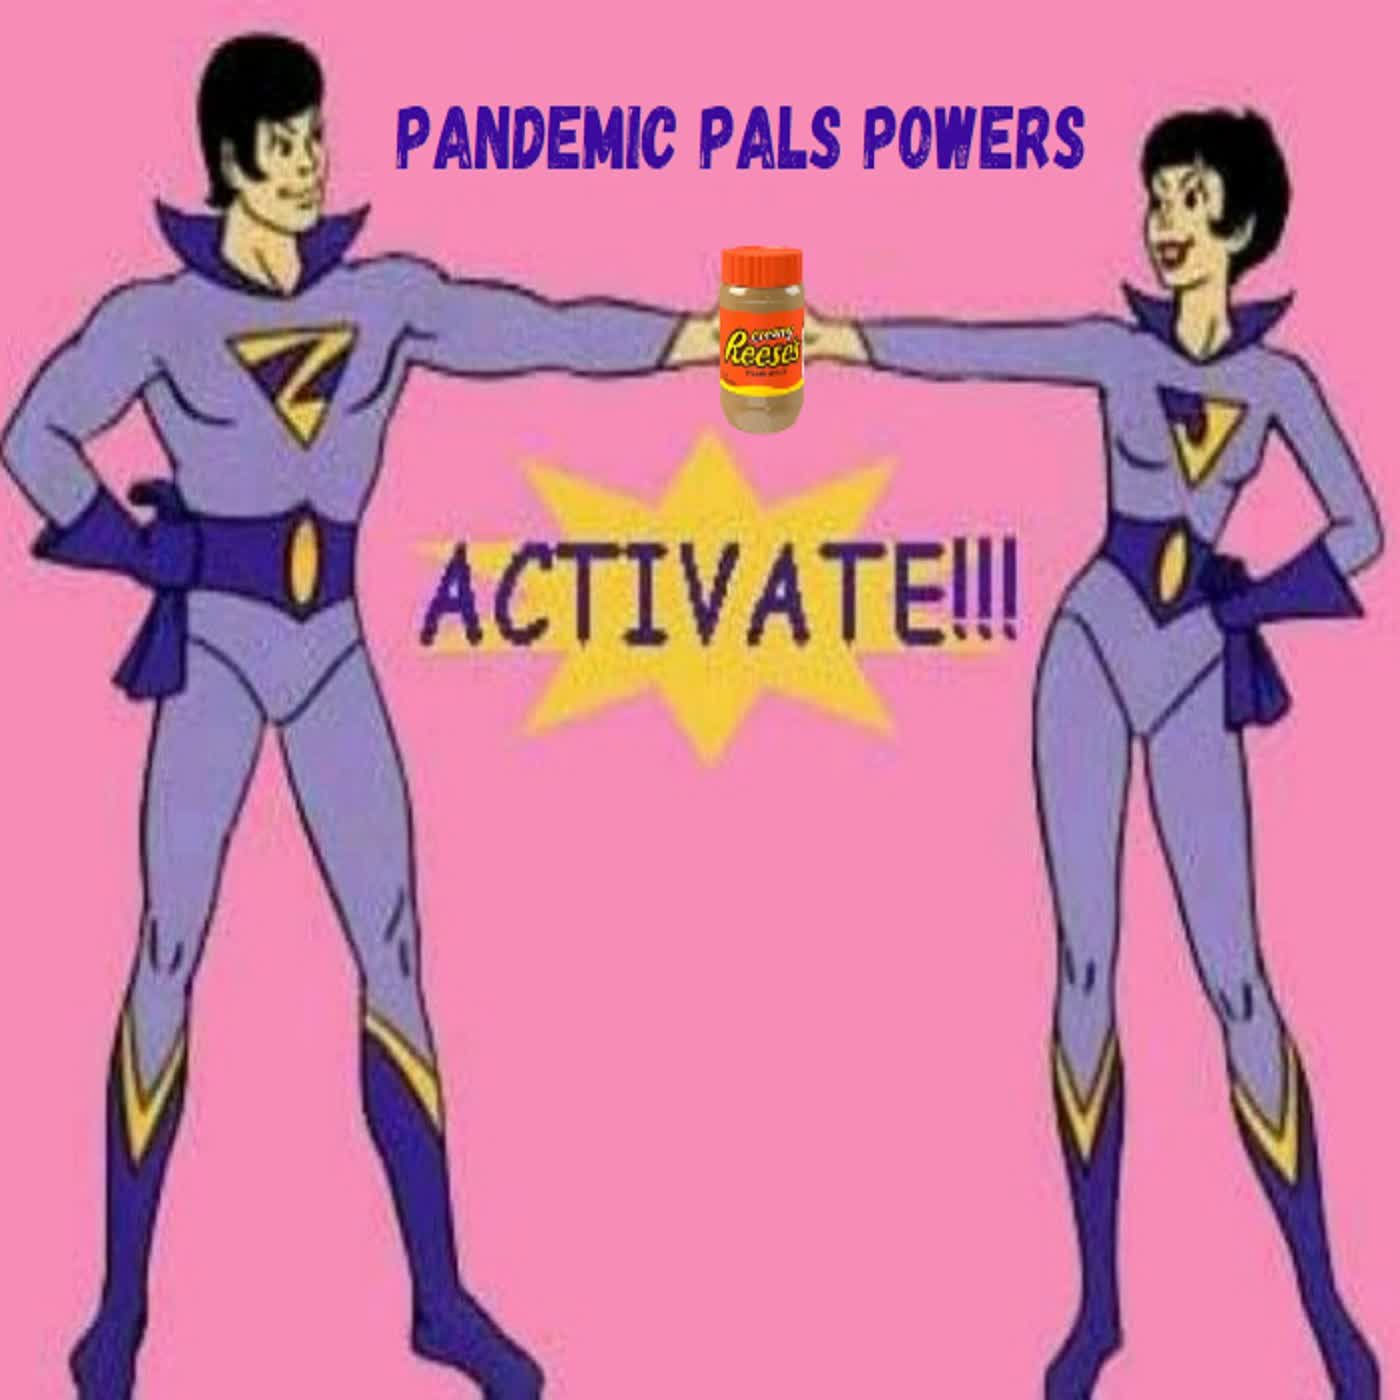 Pandemic Pals Powers Activate